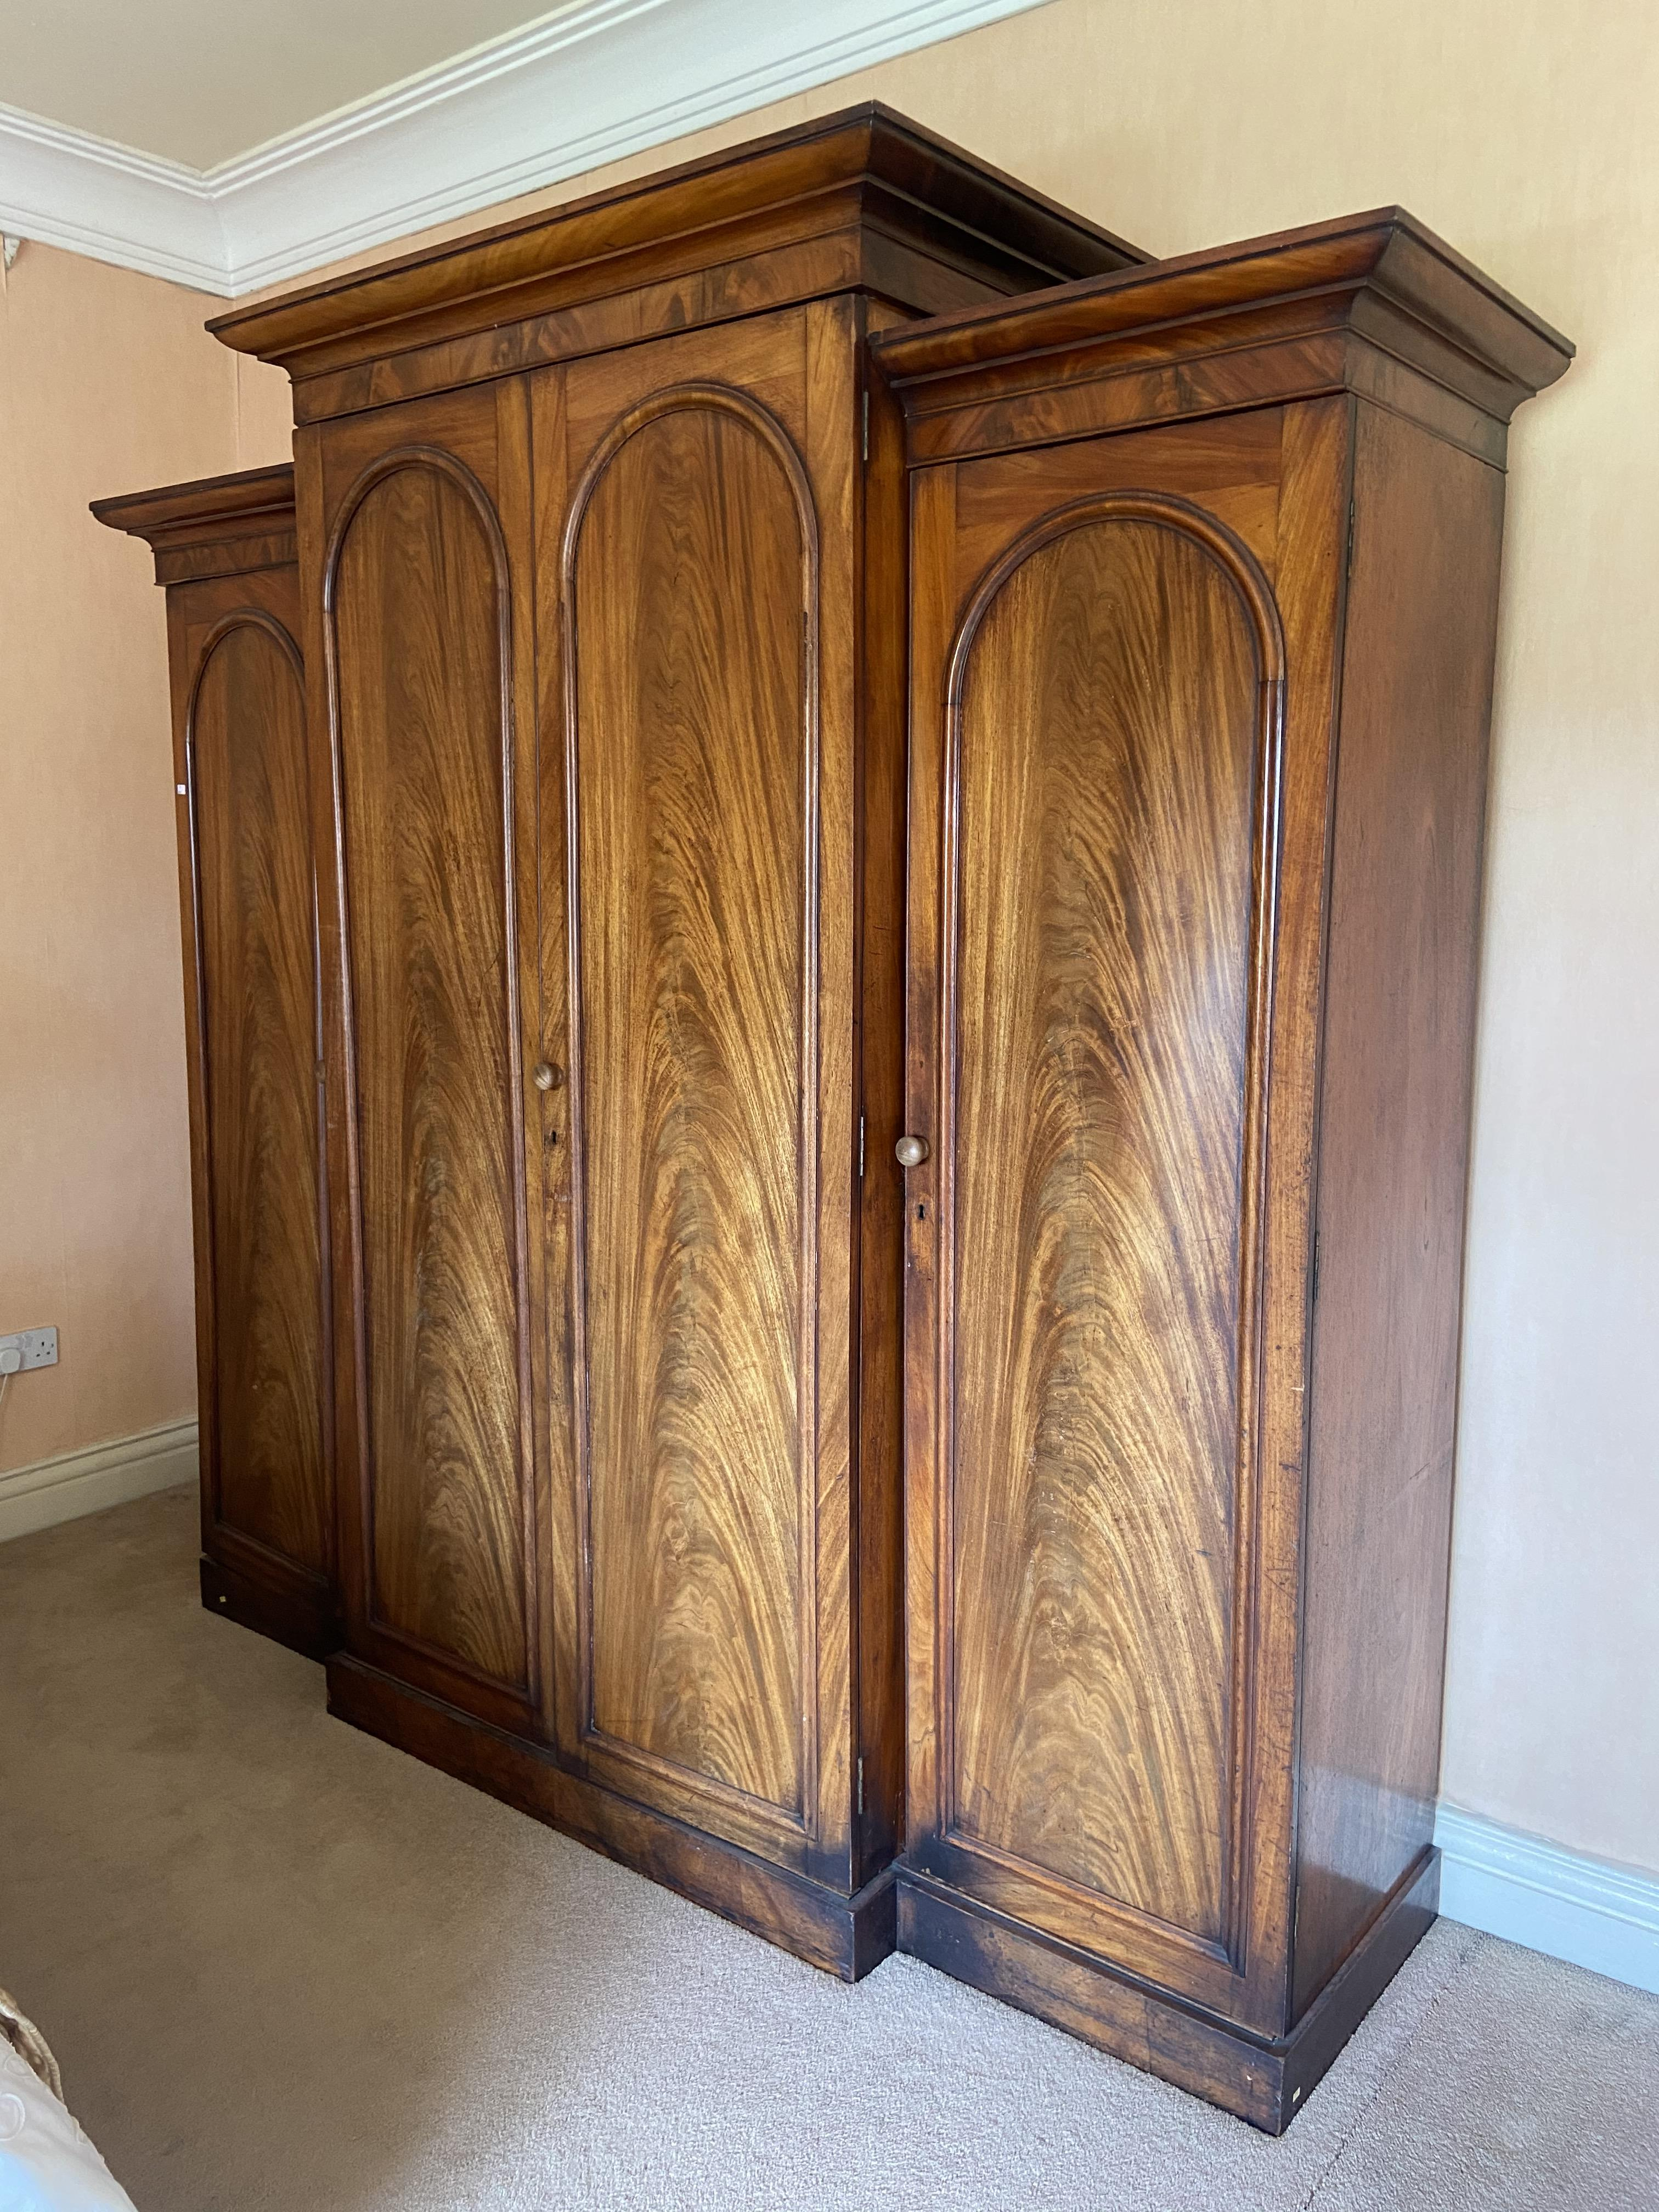 A fine Victorian breakfront Wardrobe, with raised centre and moulded cornice above four arched doors